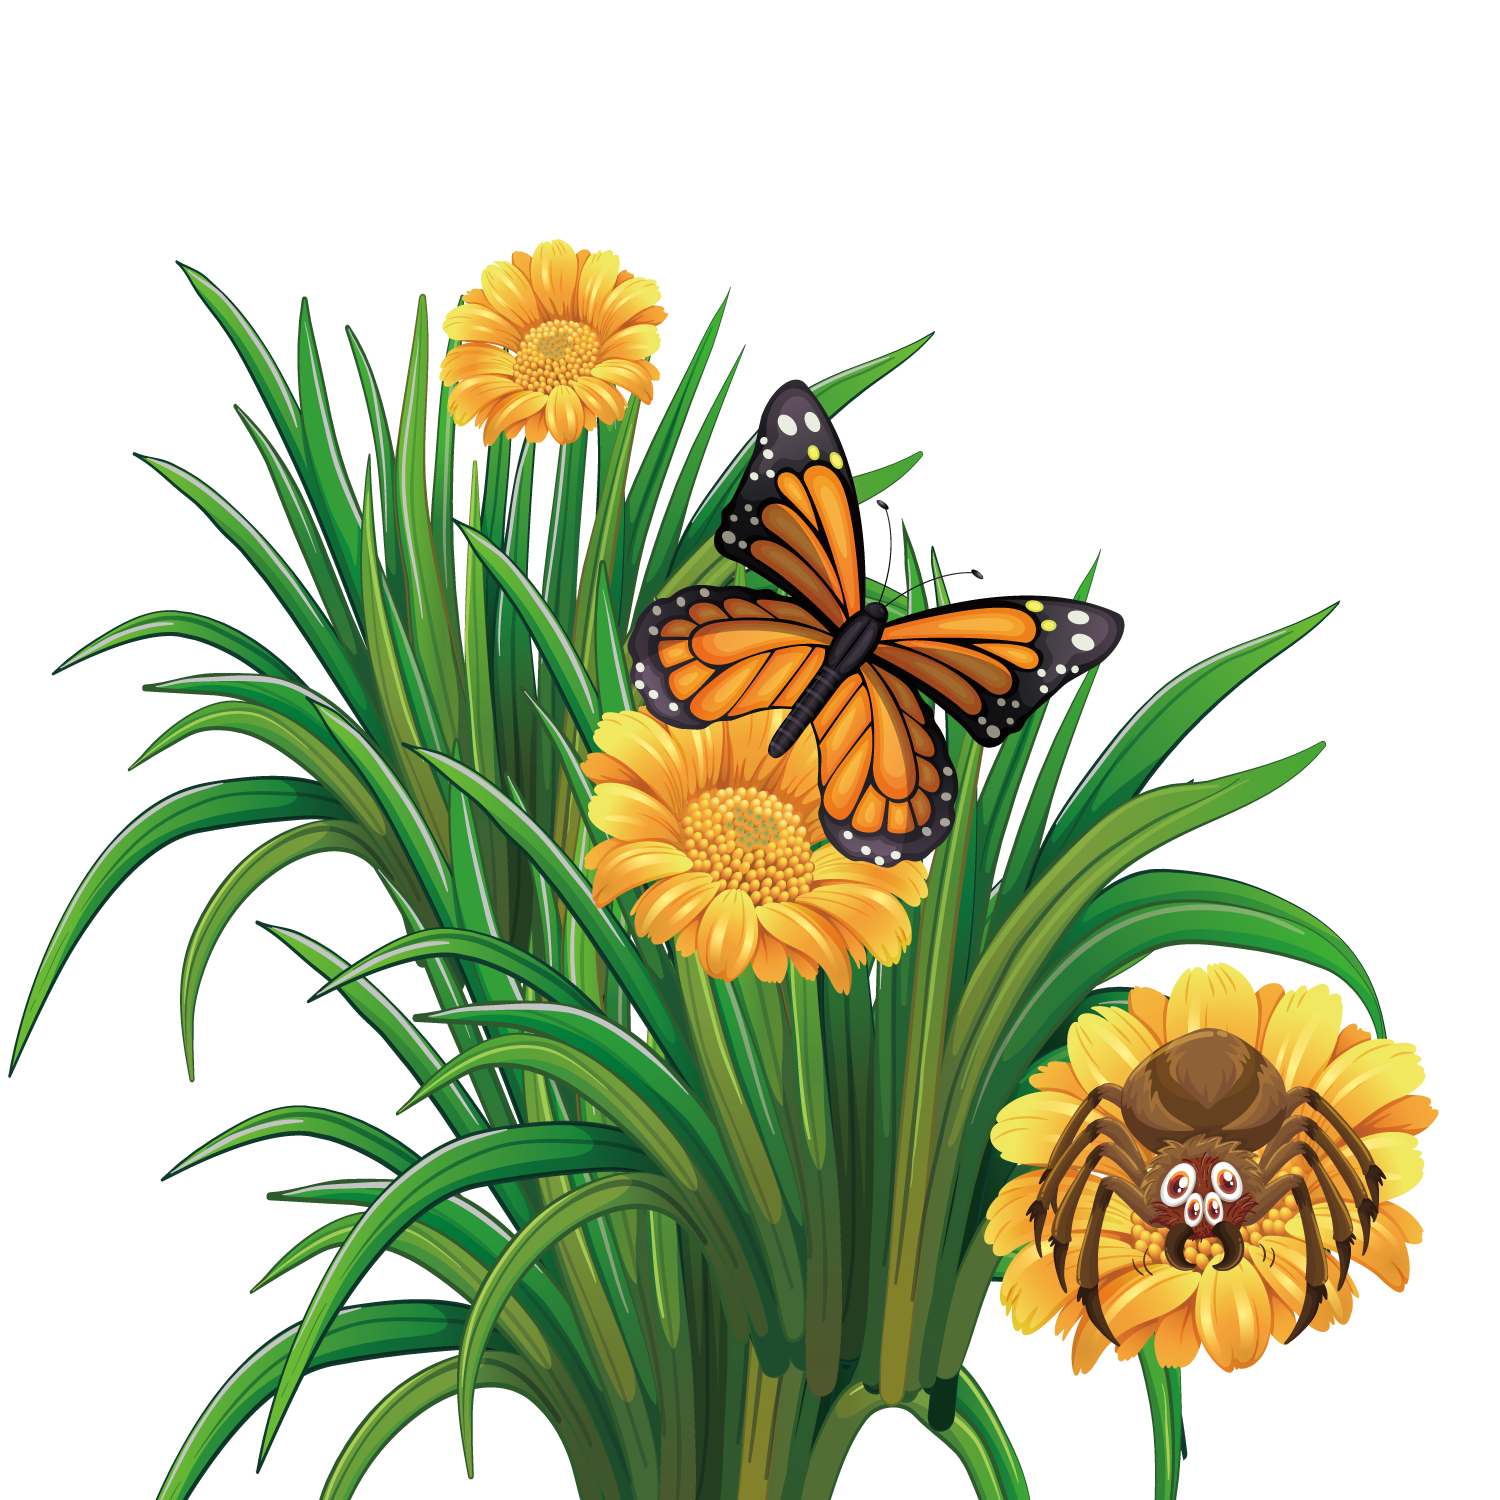 Butterfly and flower clipart freeuse stock Monarch butterfly Flower - Vector summer flowers 1500*1500 ... freeuse stock